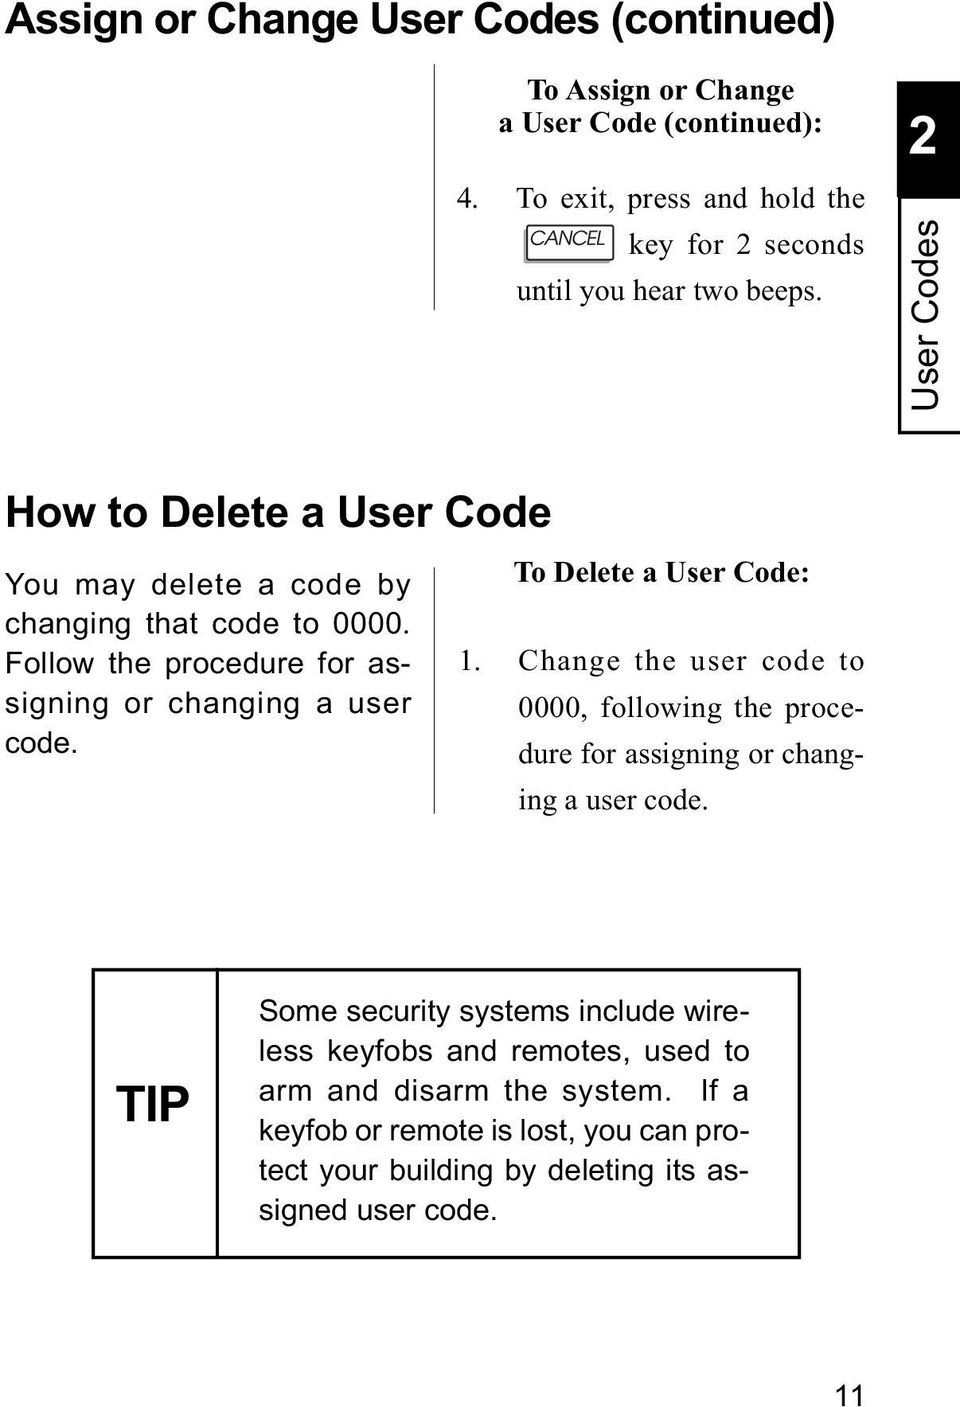 2 User Codes How to Delete a User Code You may delete a code by changing that code to 0000. Follow the procedure for assigning or changing a user code.